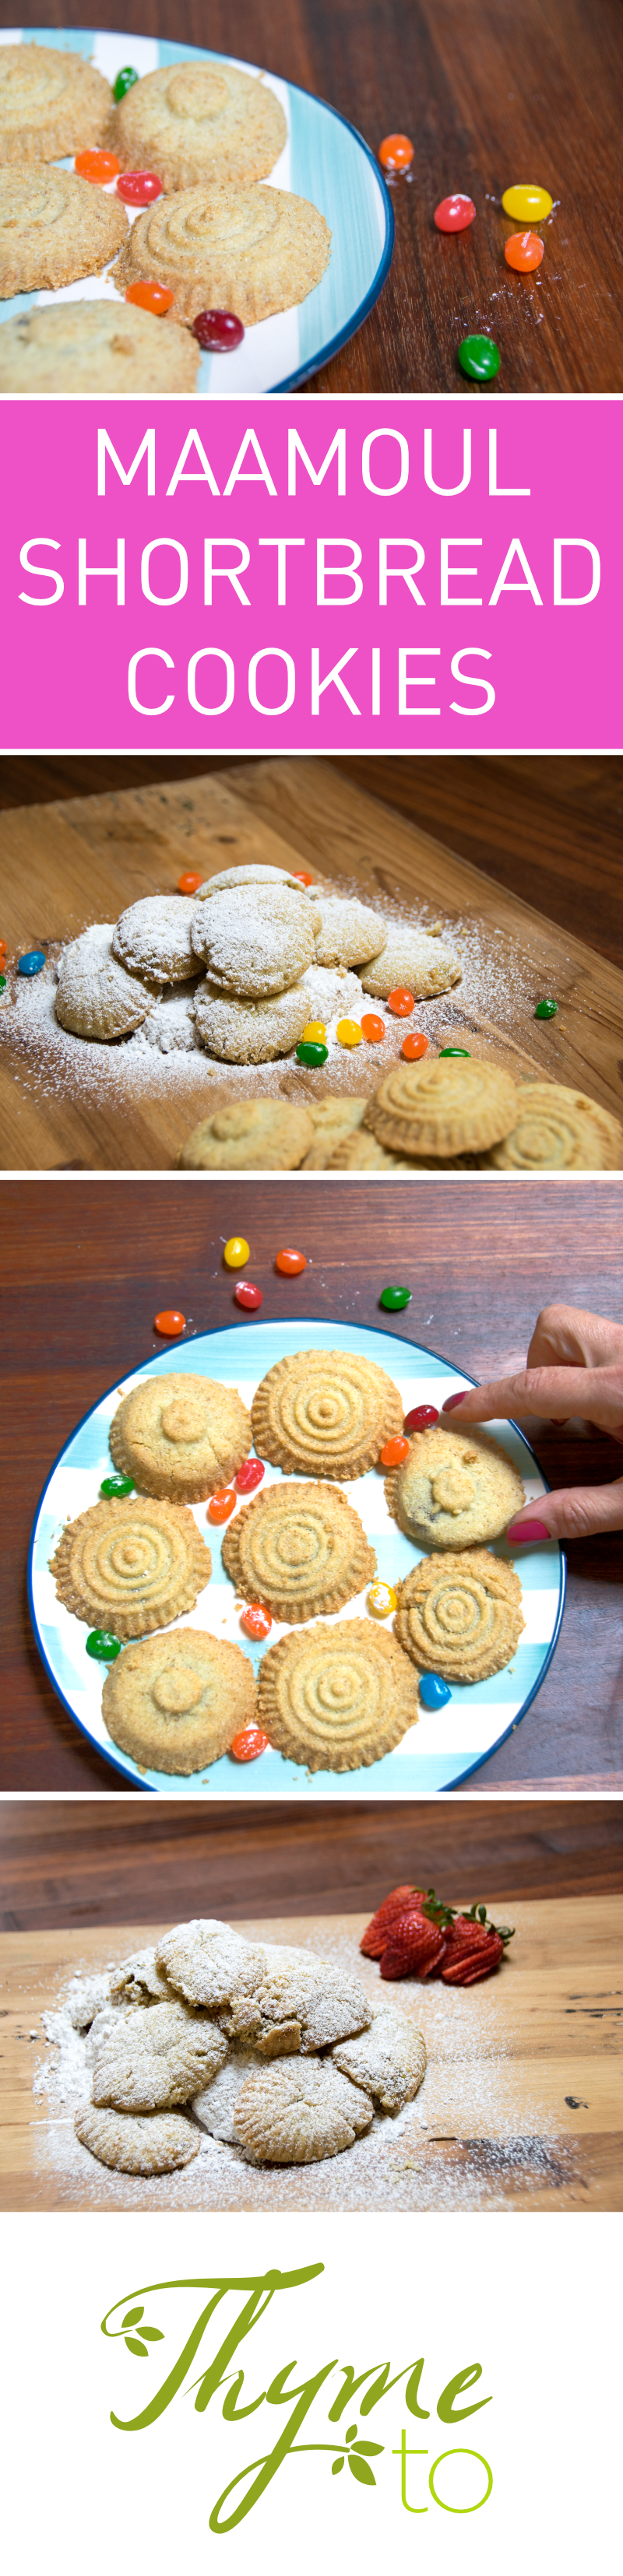 maamoul-easter-shortbread-cookies